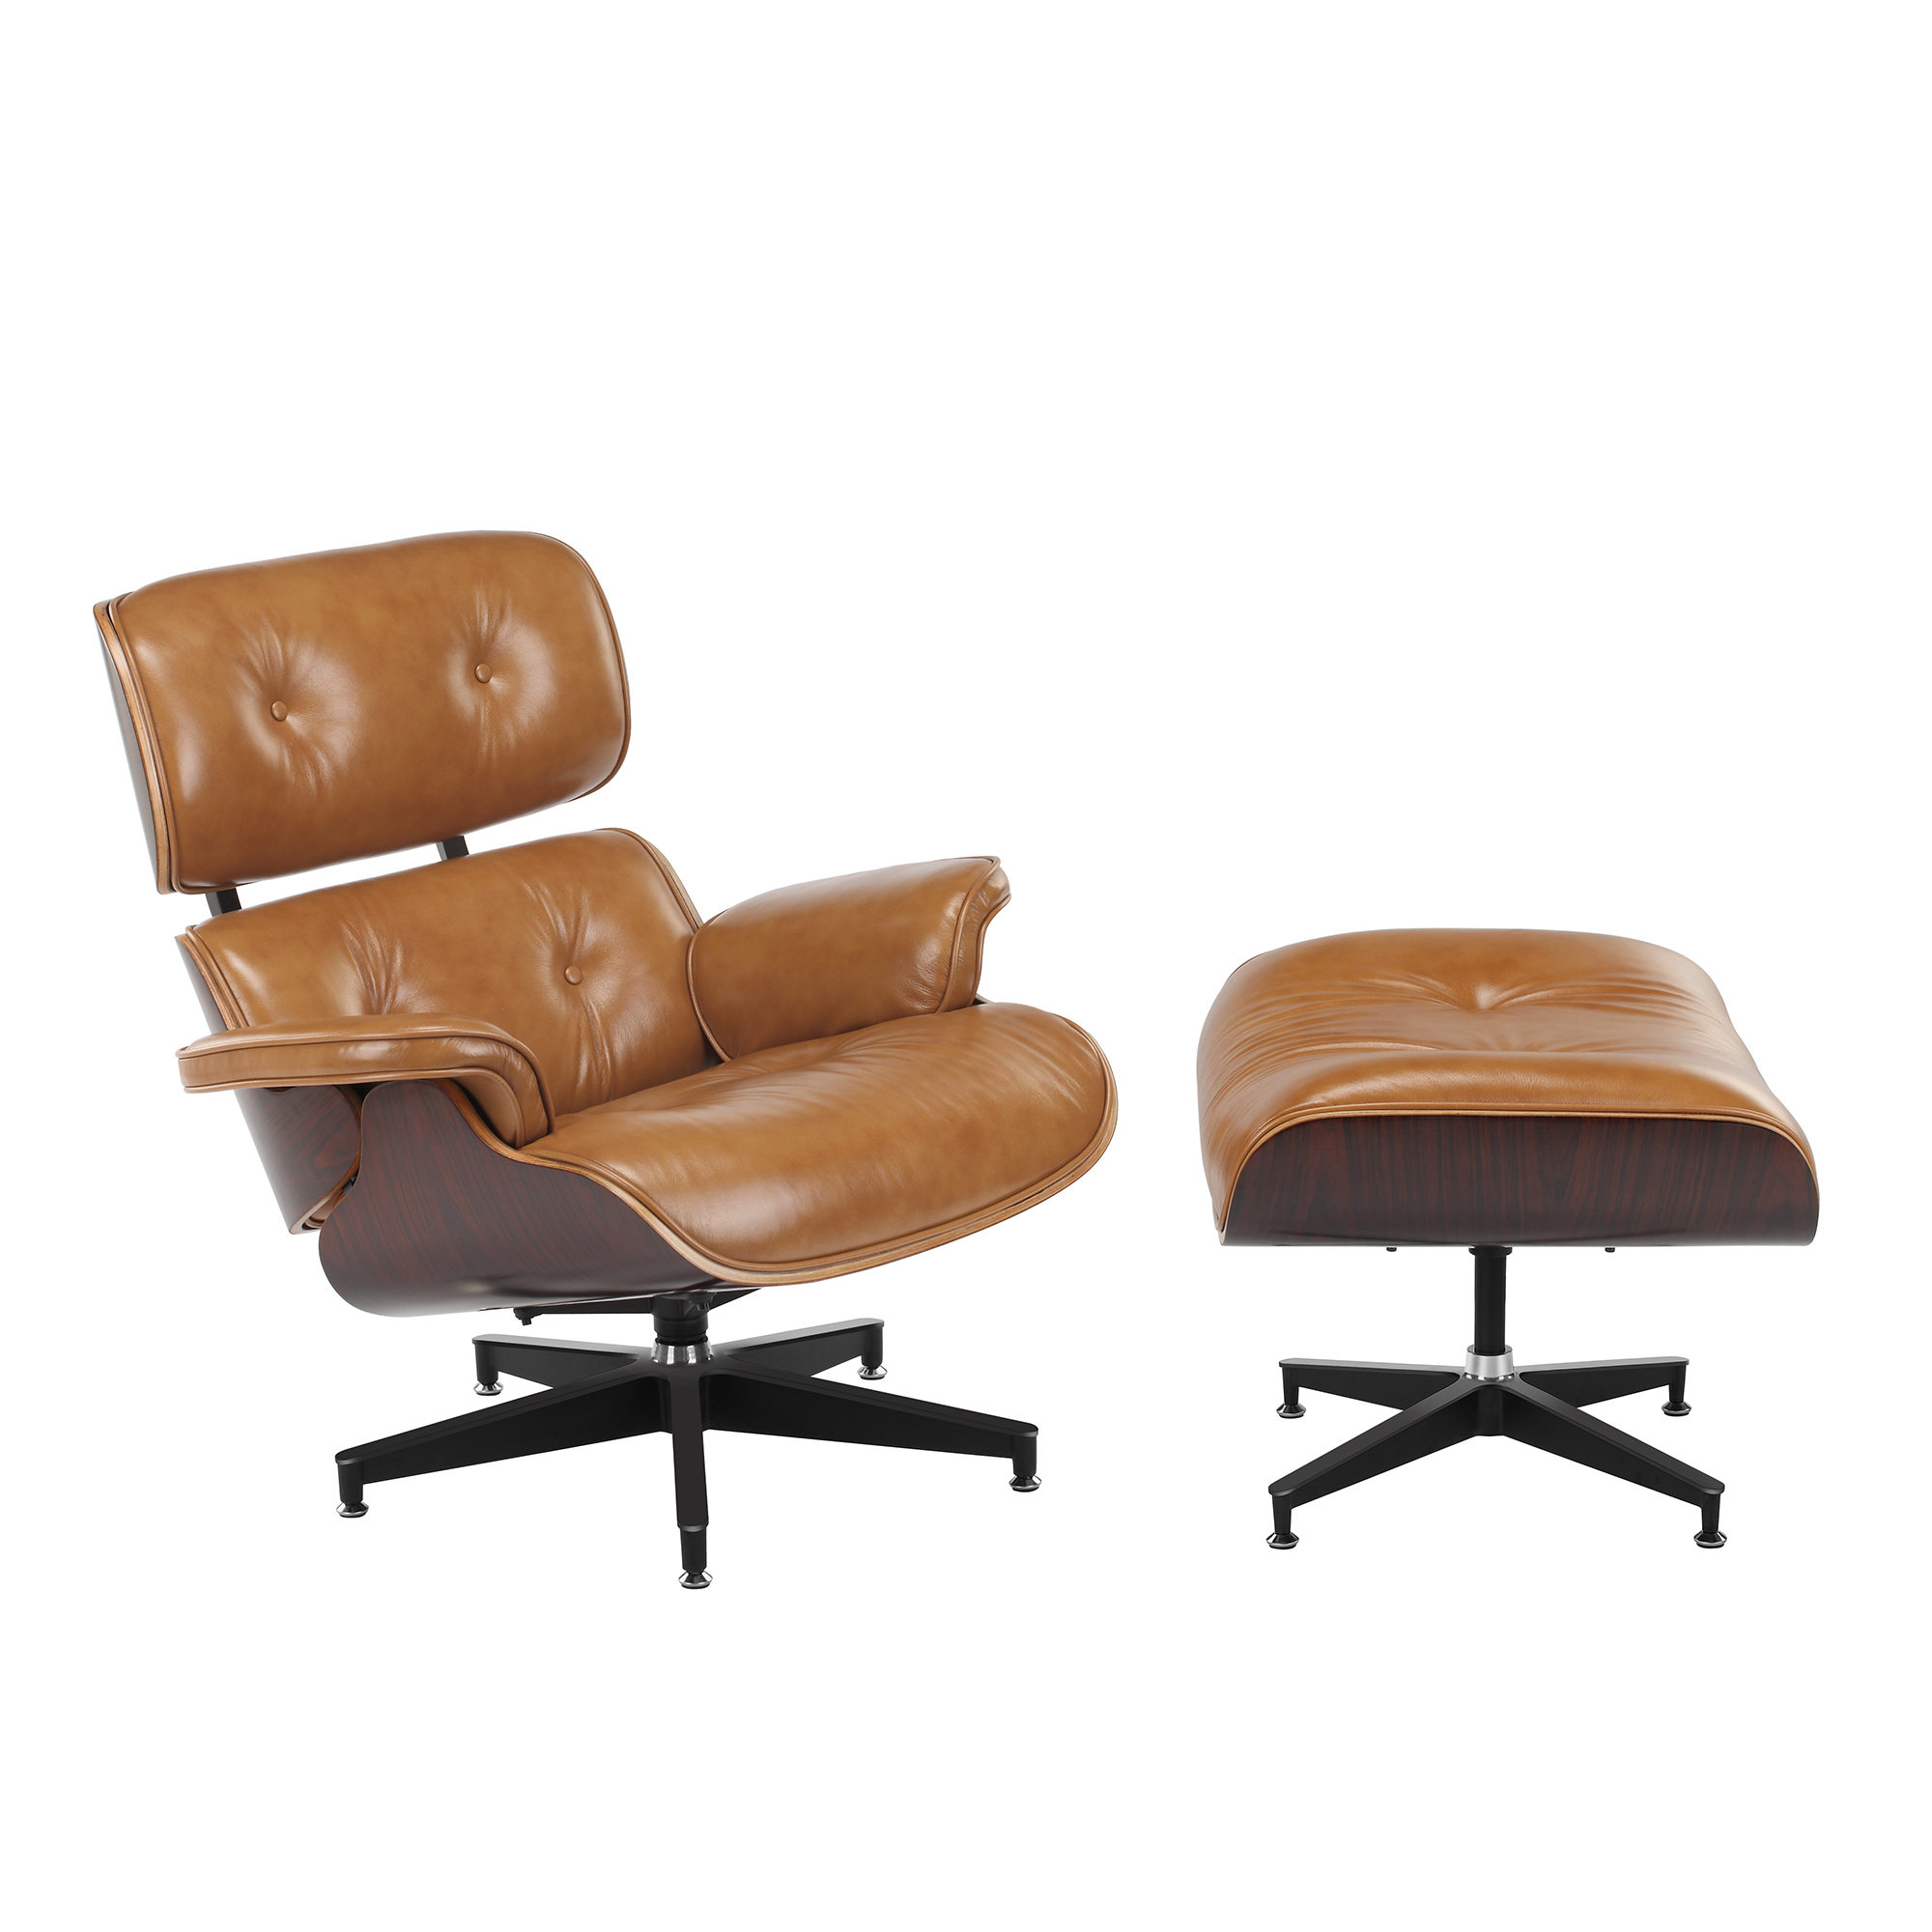 Tremendous Eames Premium Leather Replica Lounge Chair Ottoman Cjindustries Chair Design For Home Cjindustriesco